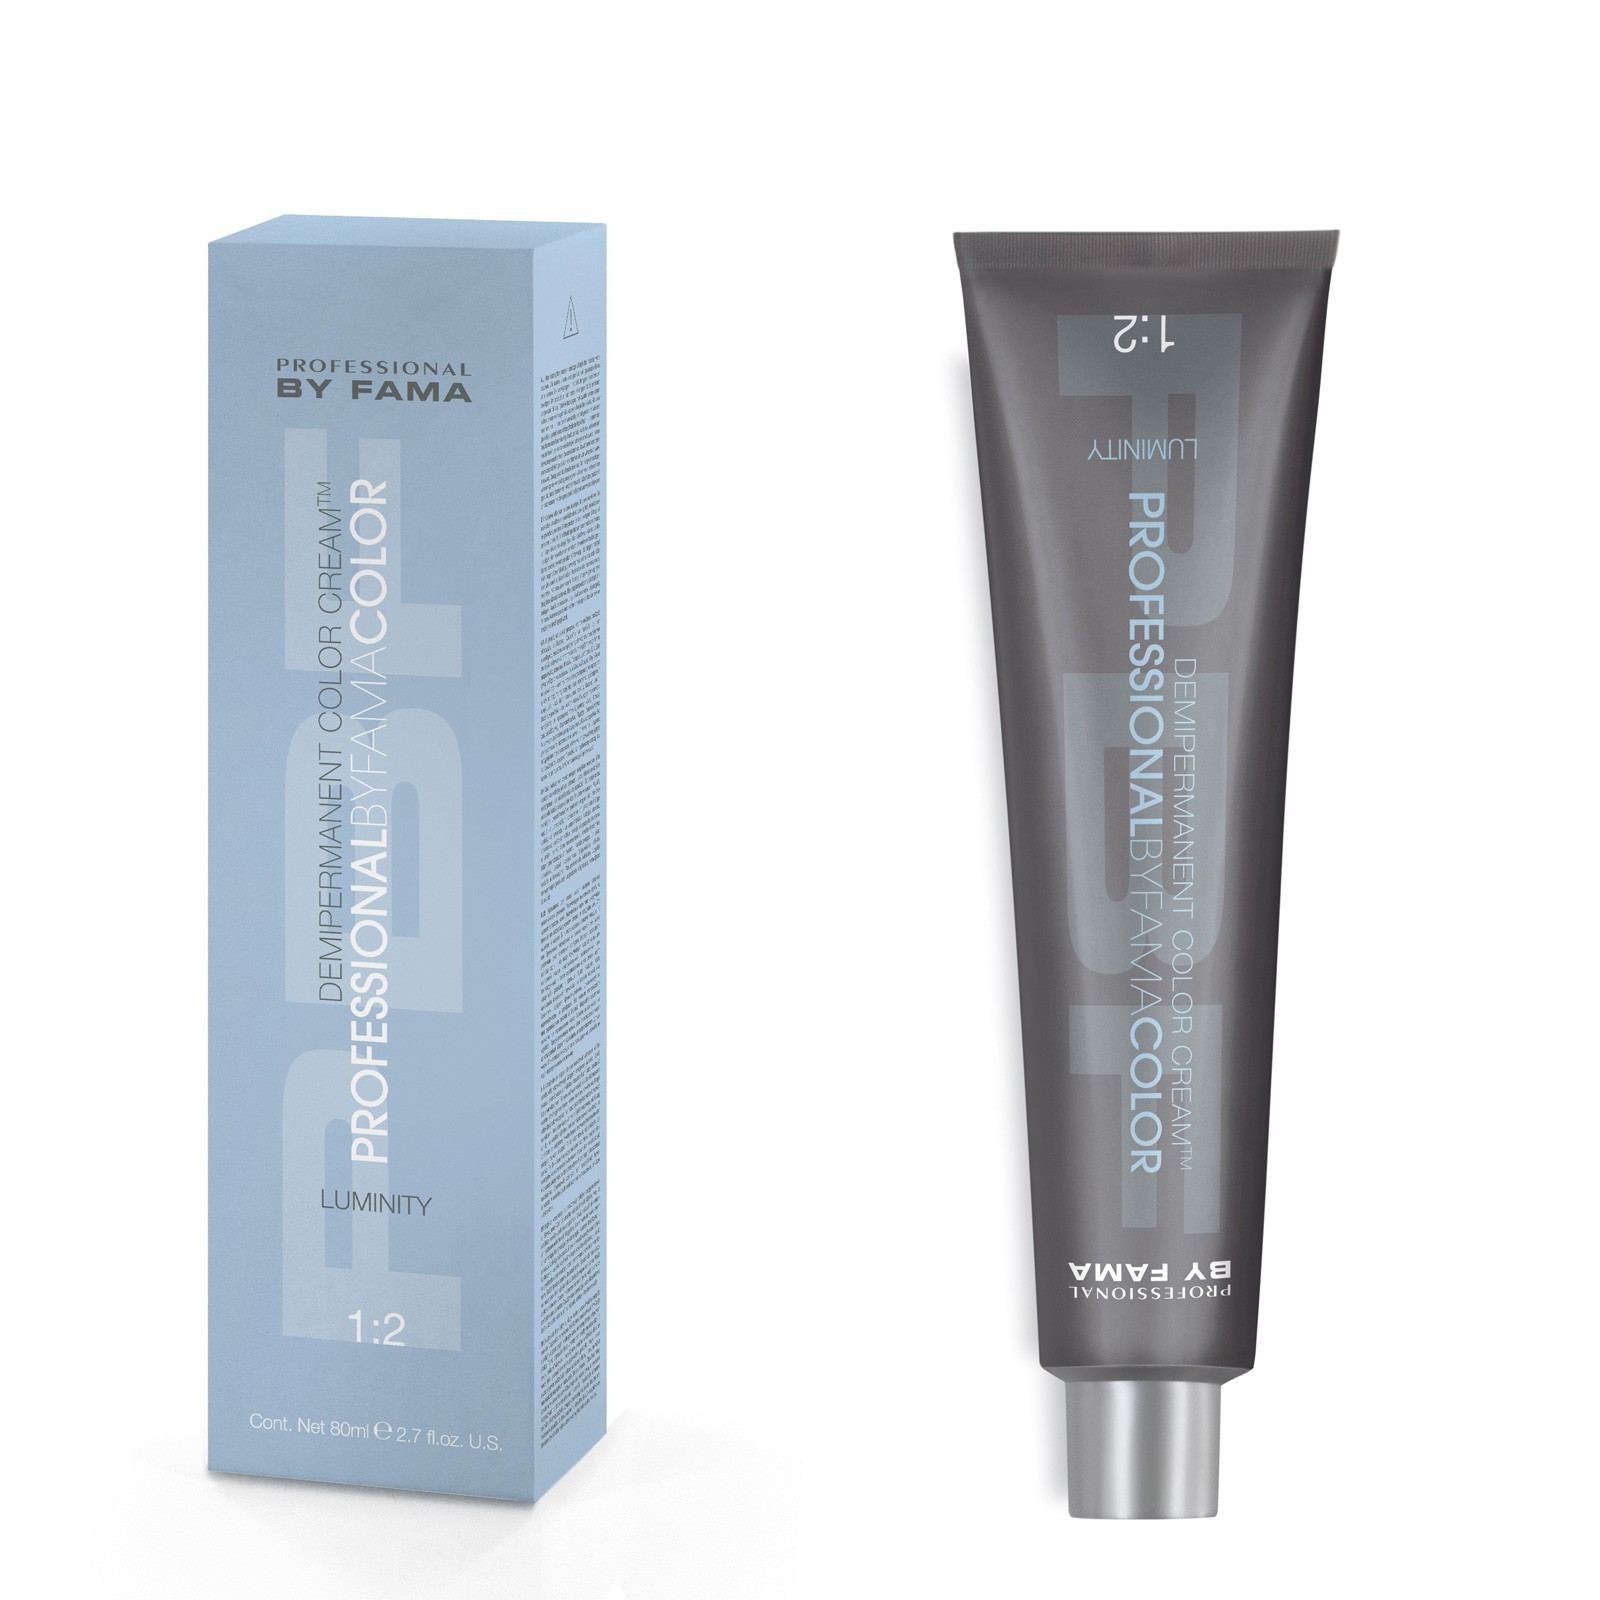 PBFC DEMIPERMANENT LUMINITY 1+2 80ml No 9,31